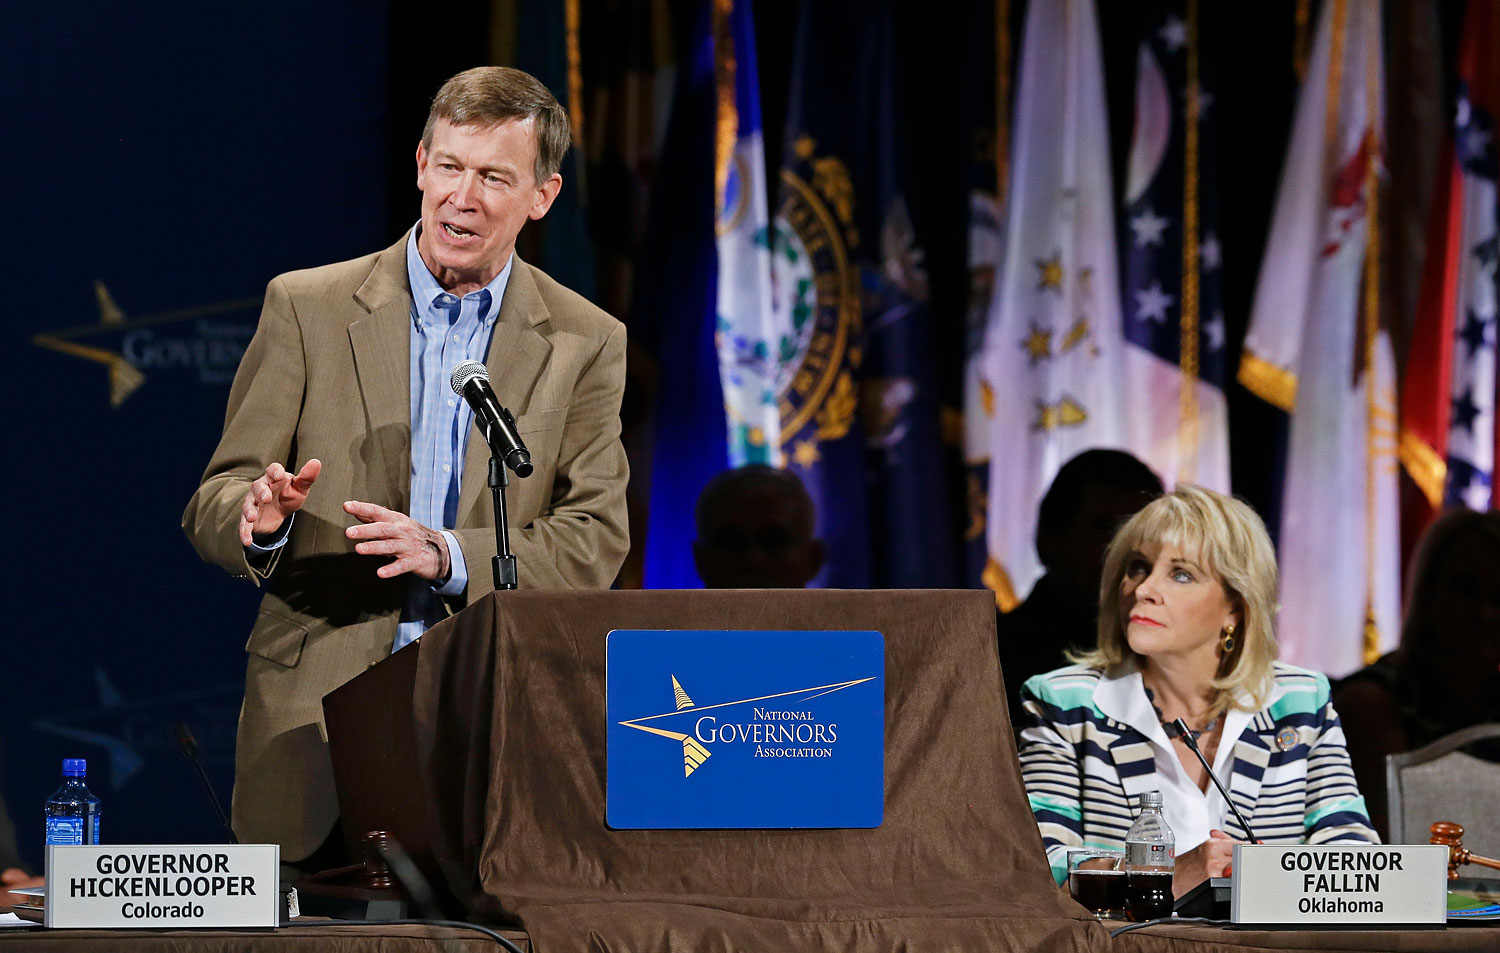 Colorado Gov. John Hickenlooper speaks during the closing session of the National Governors Association convention, July 13, 2014, in Nashville.